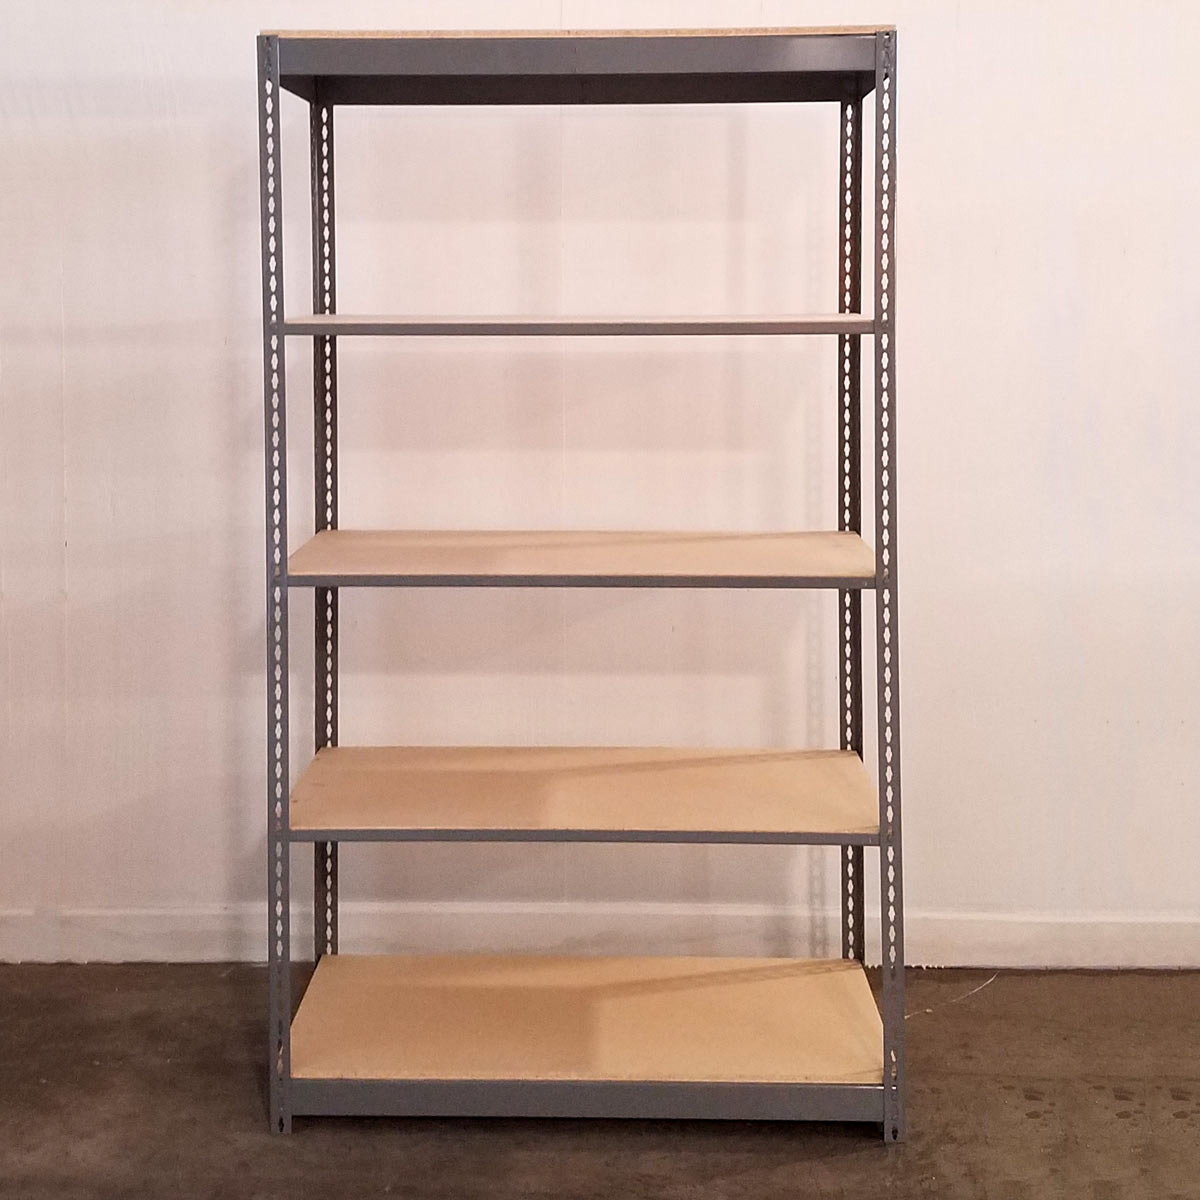 Fresno Rack And Shelving With Well Known Fresno Standard Bookcases (View 7 of 20)